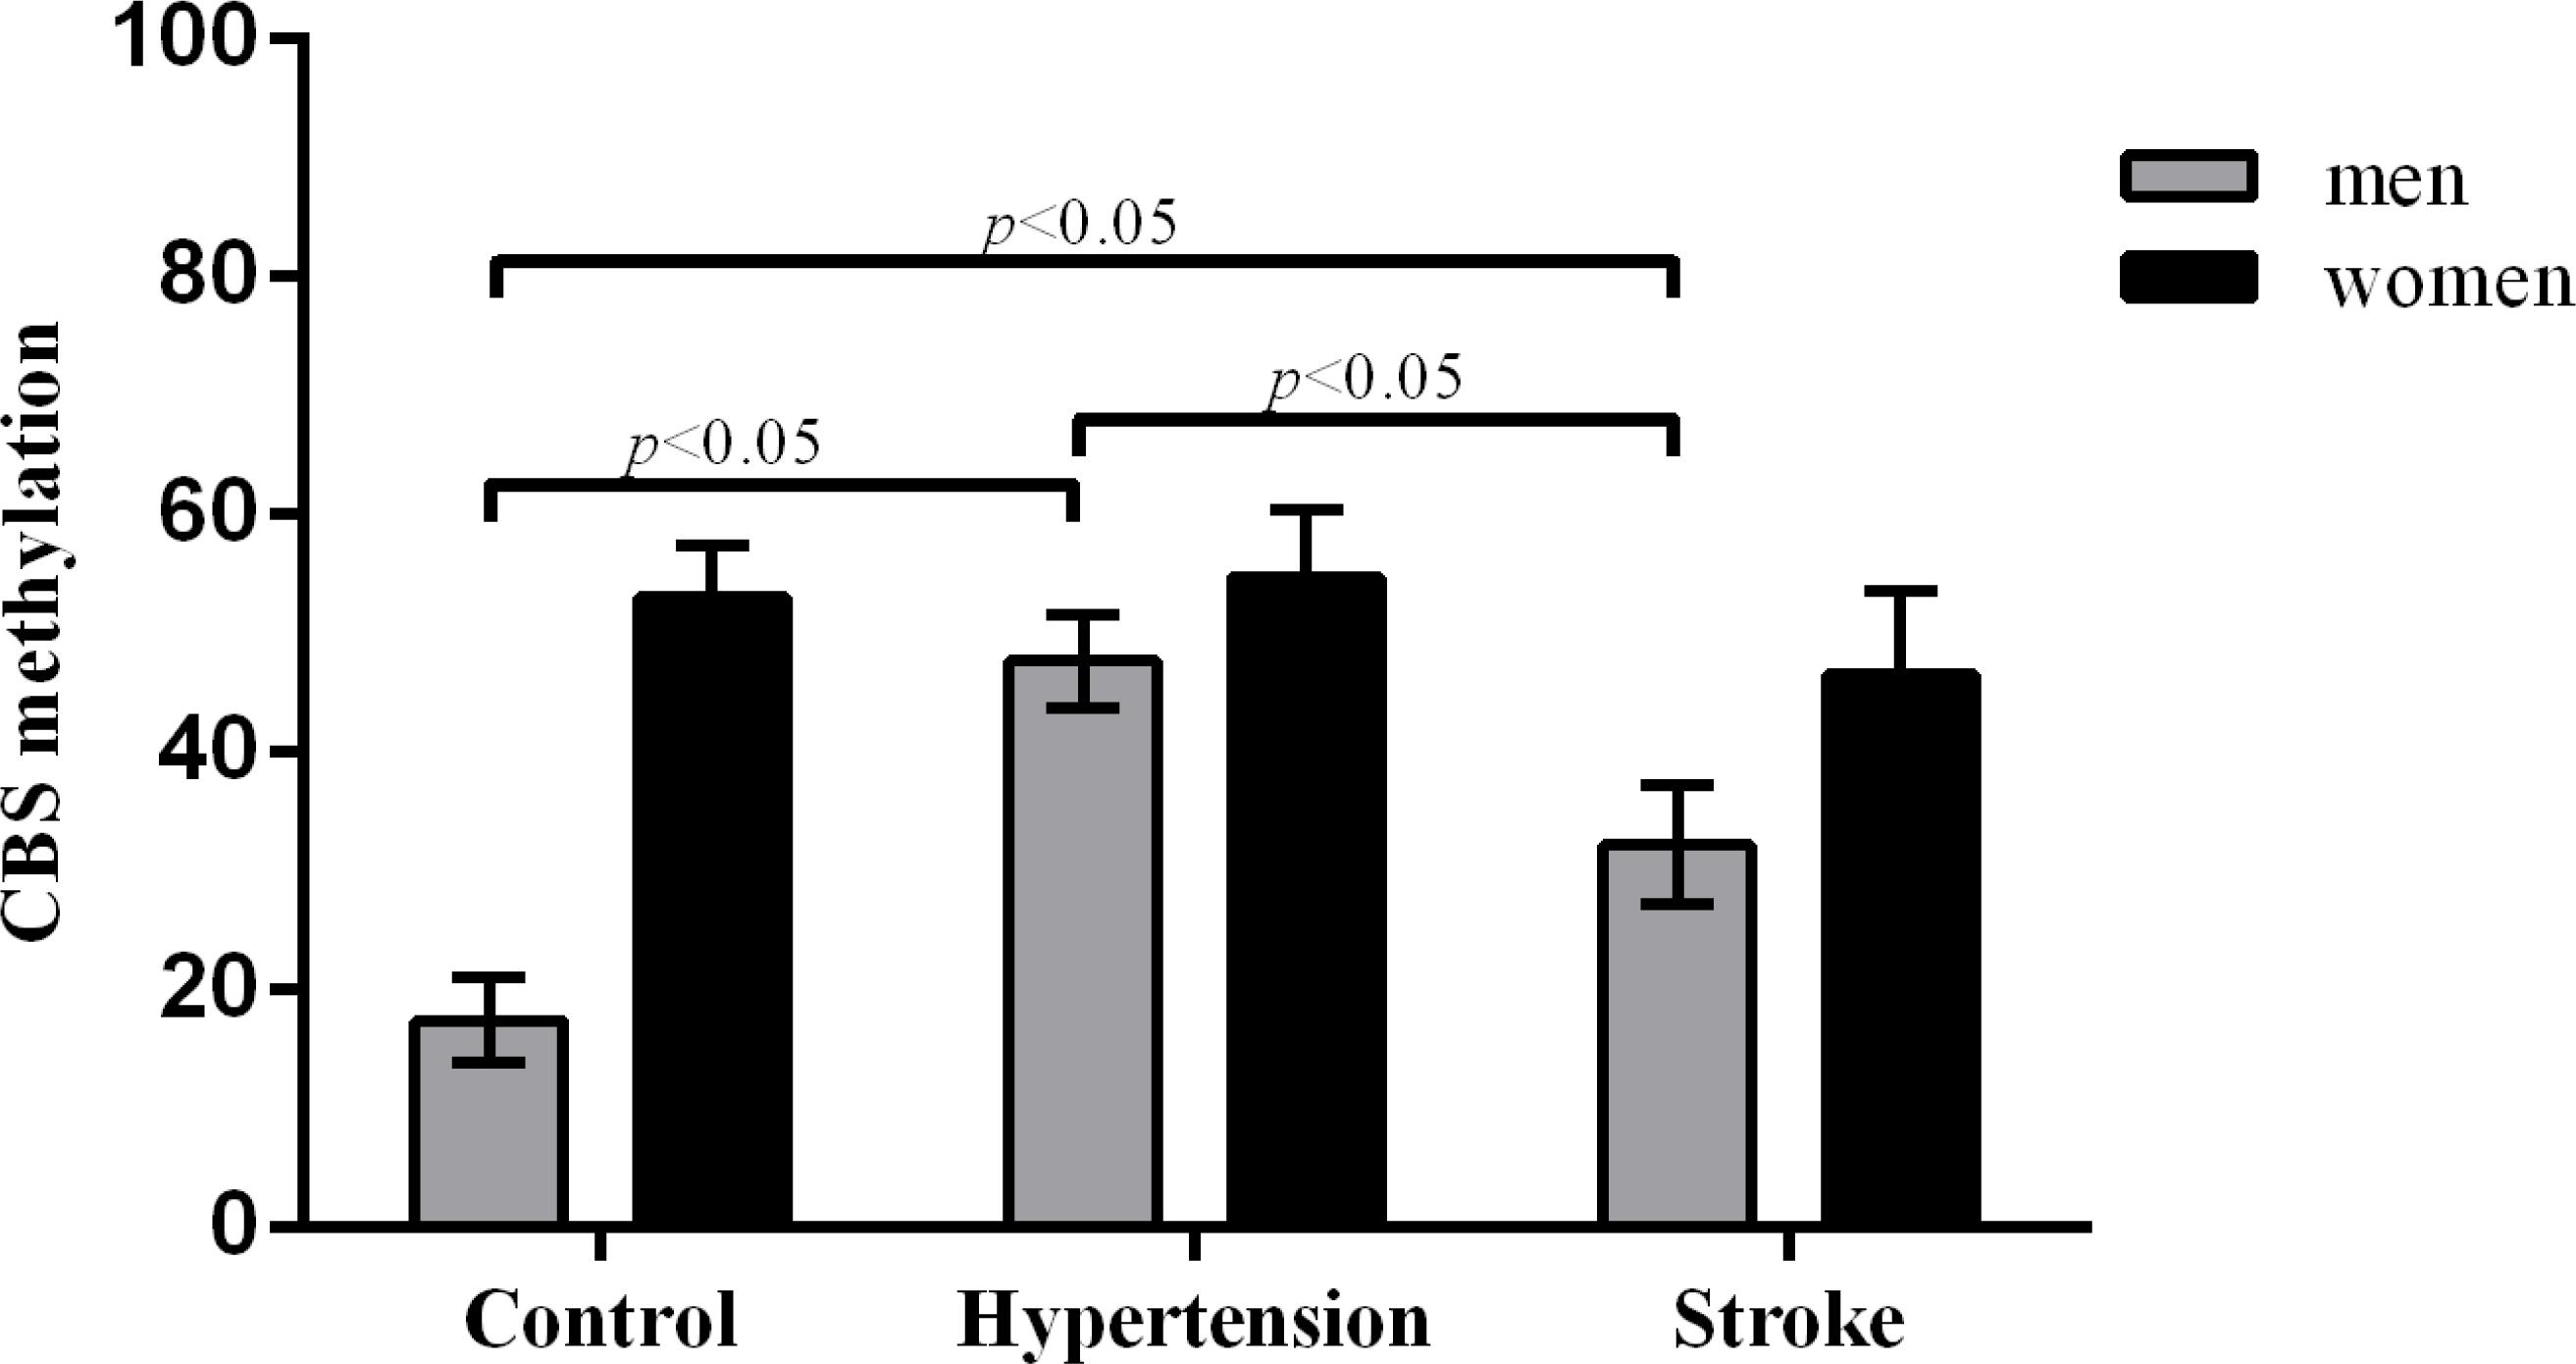 Comparison of CBS methylation levels between healthy controls and hypertensive and stroke patients.